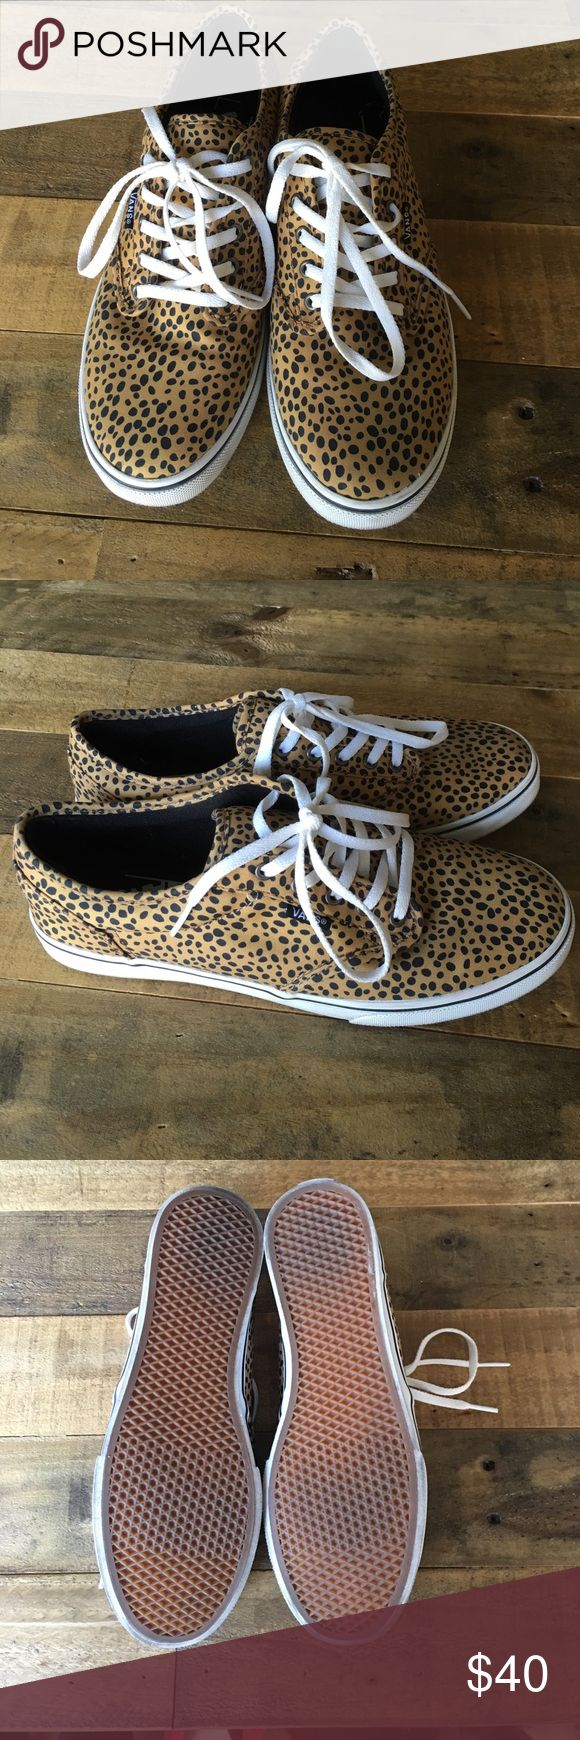 Vans Animal Print Sneakers Size 7.5 Womens Animal print vans. Only wore these once! Perfect condition. Size 7.5 in women's Vans Shoes Sneakers